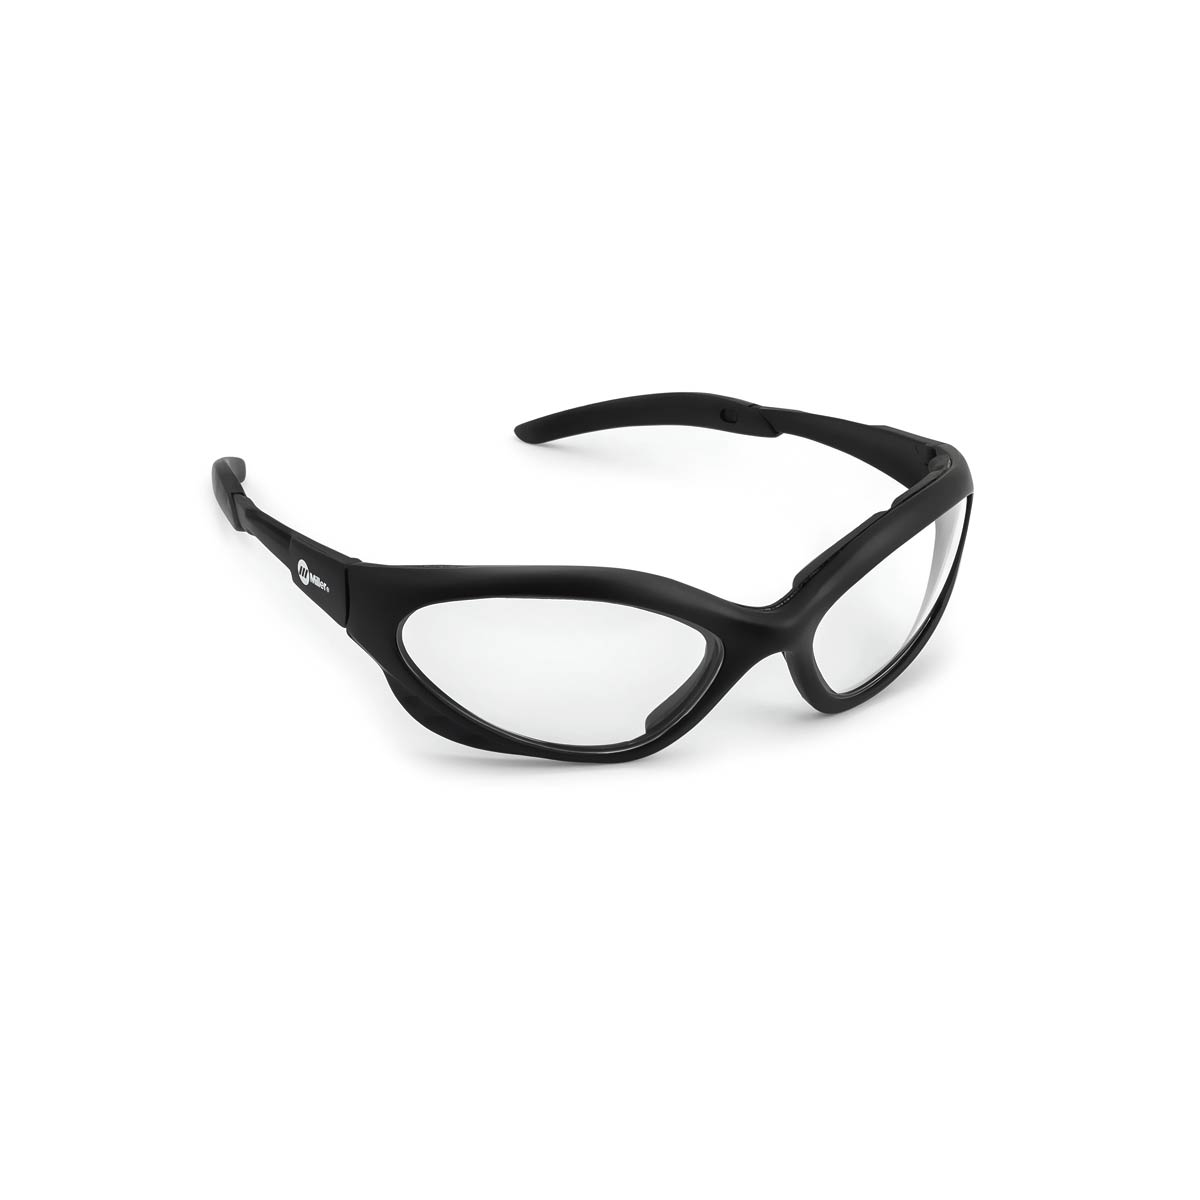 GLASSES CLEAR LENS/BLACK FRAME. Part: 238979. Pack: 1